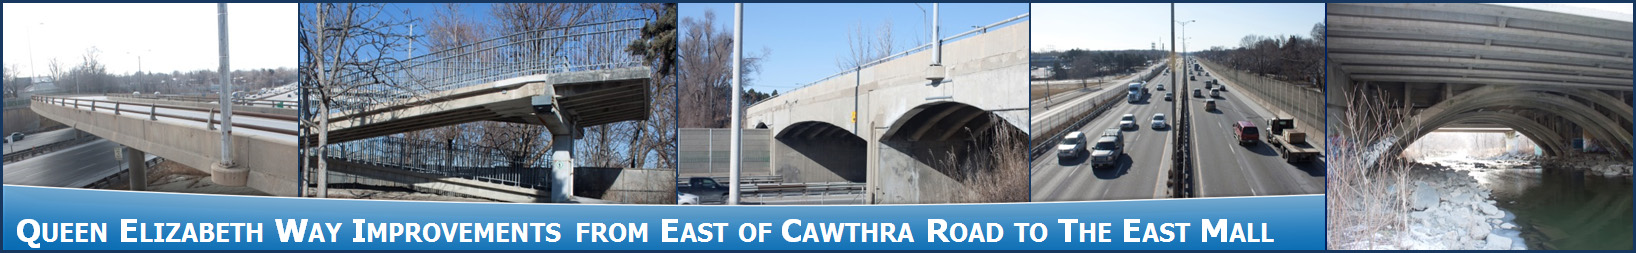 Queen Elizabeth Way (QEW) Improvements from East of Cawthra Road to The East Mall